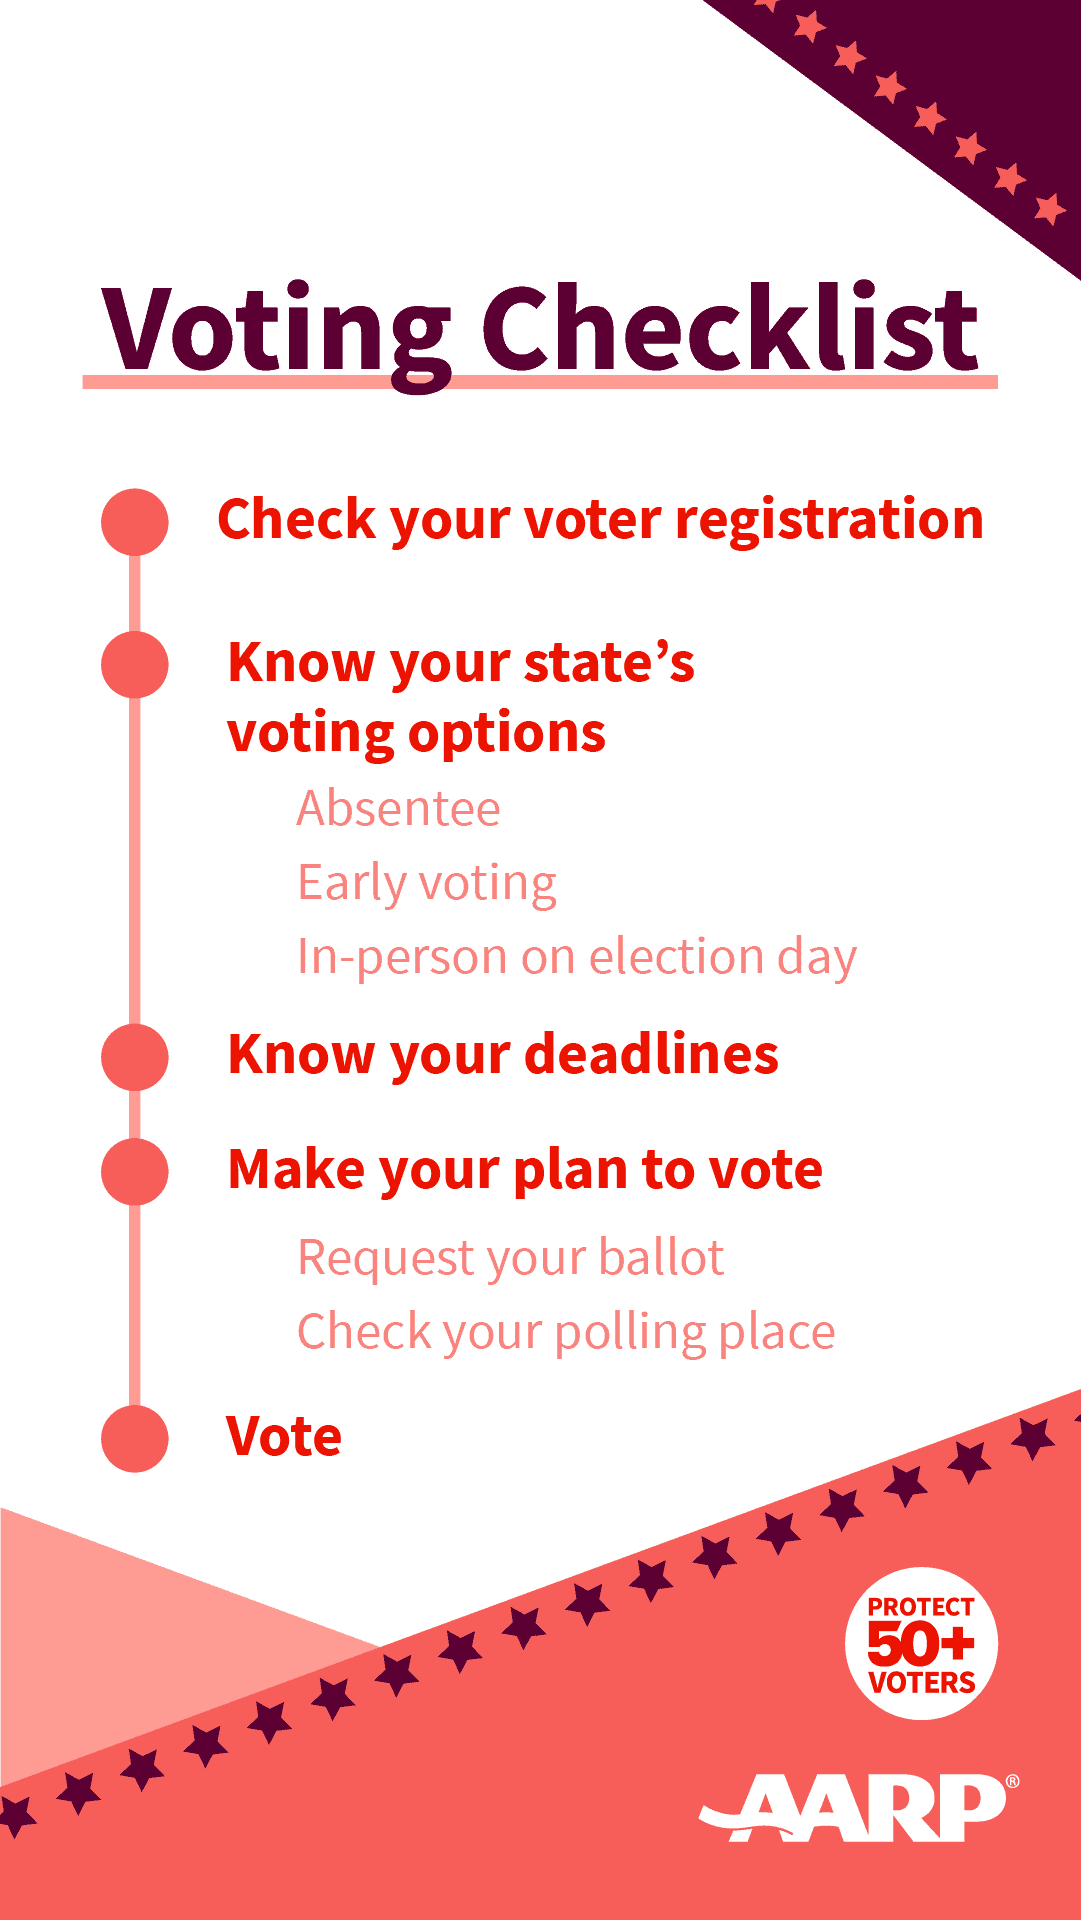 Make Your Vote Count in 2020